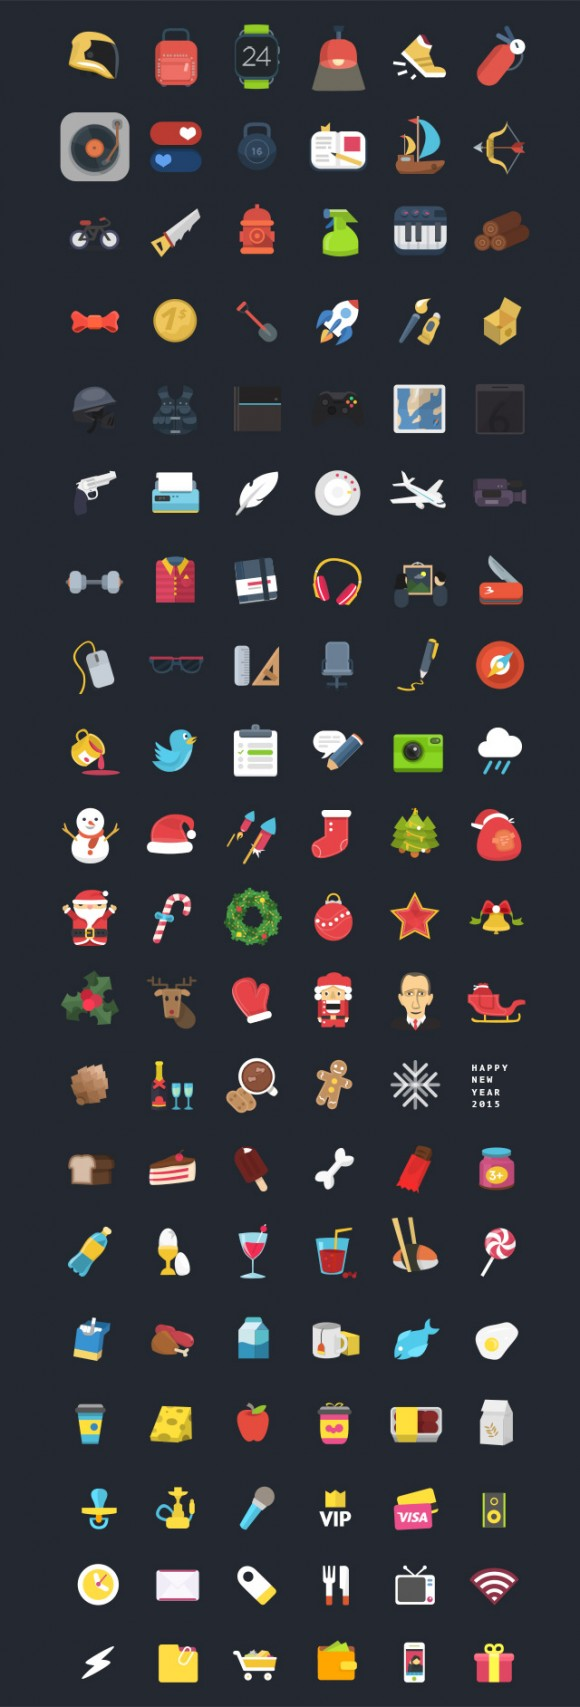 120+ Free PSD colourful icons - Full image